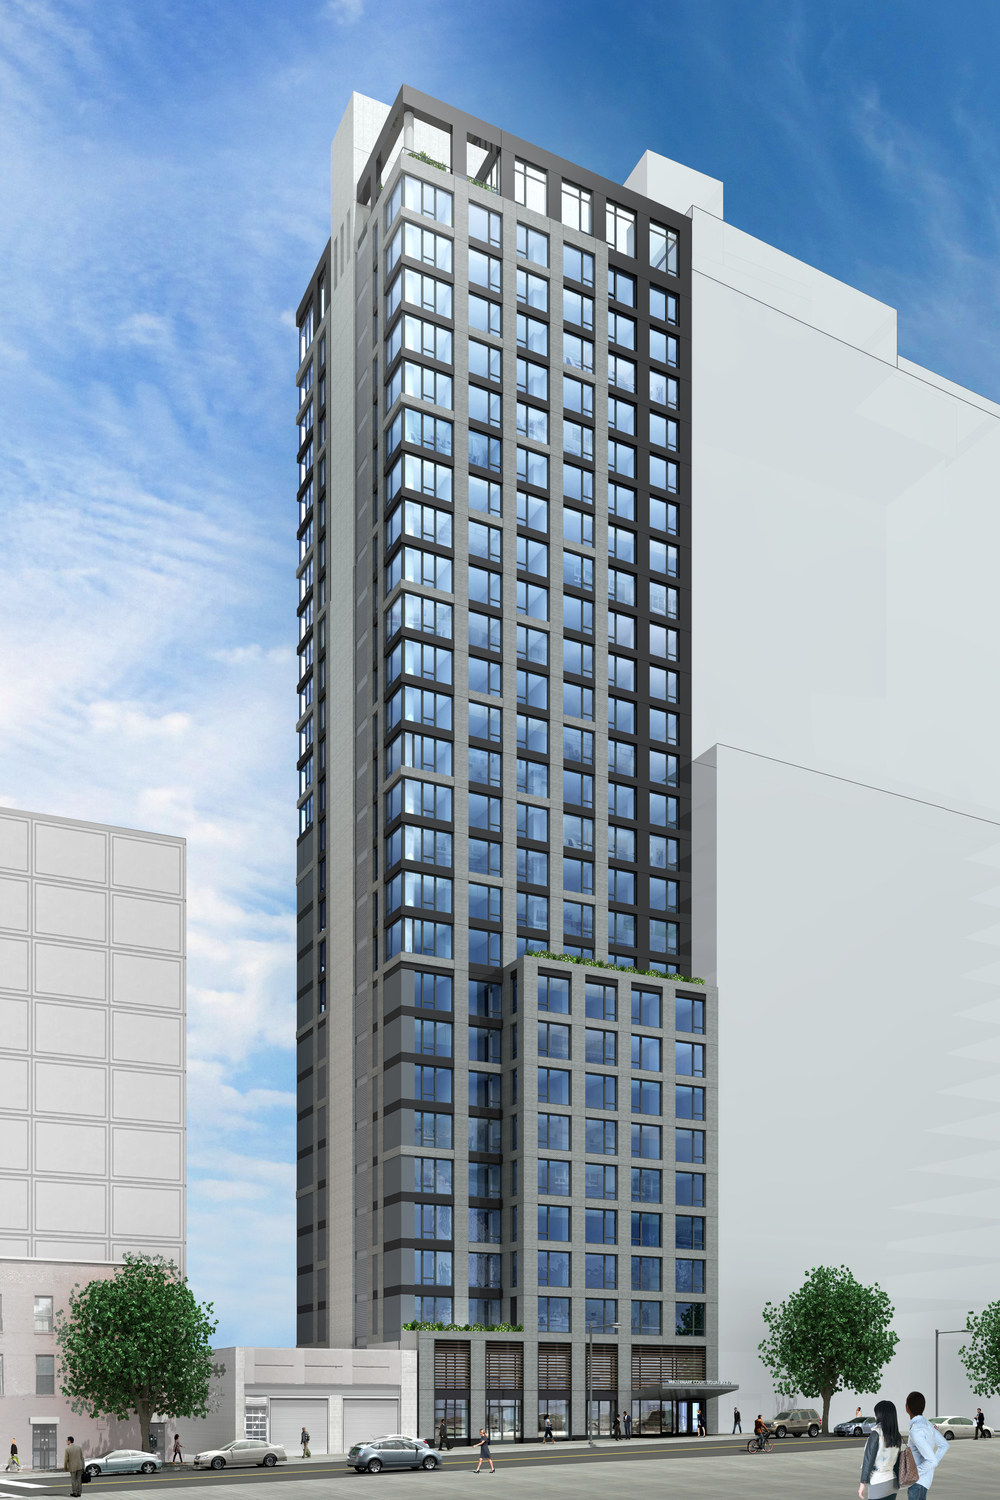 27 story 168 unit residential building rises to third